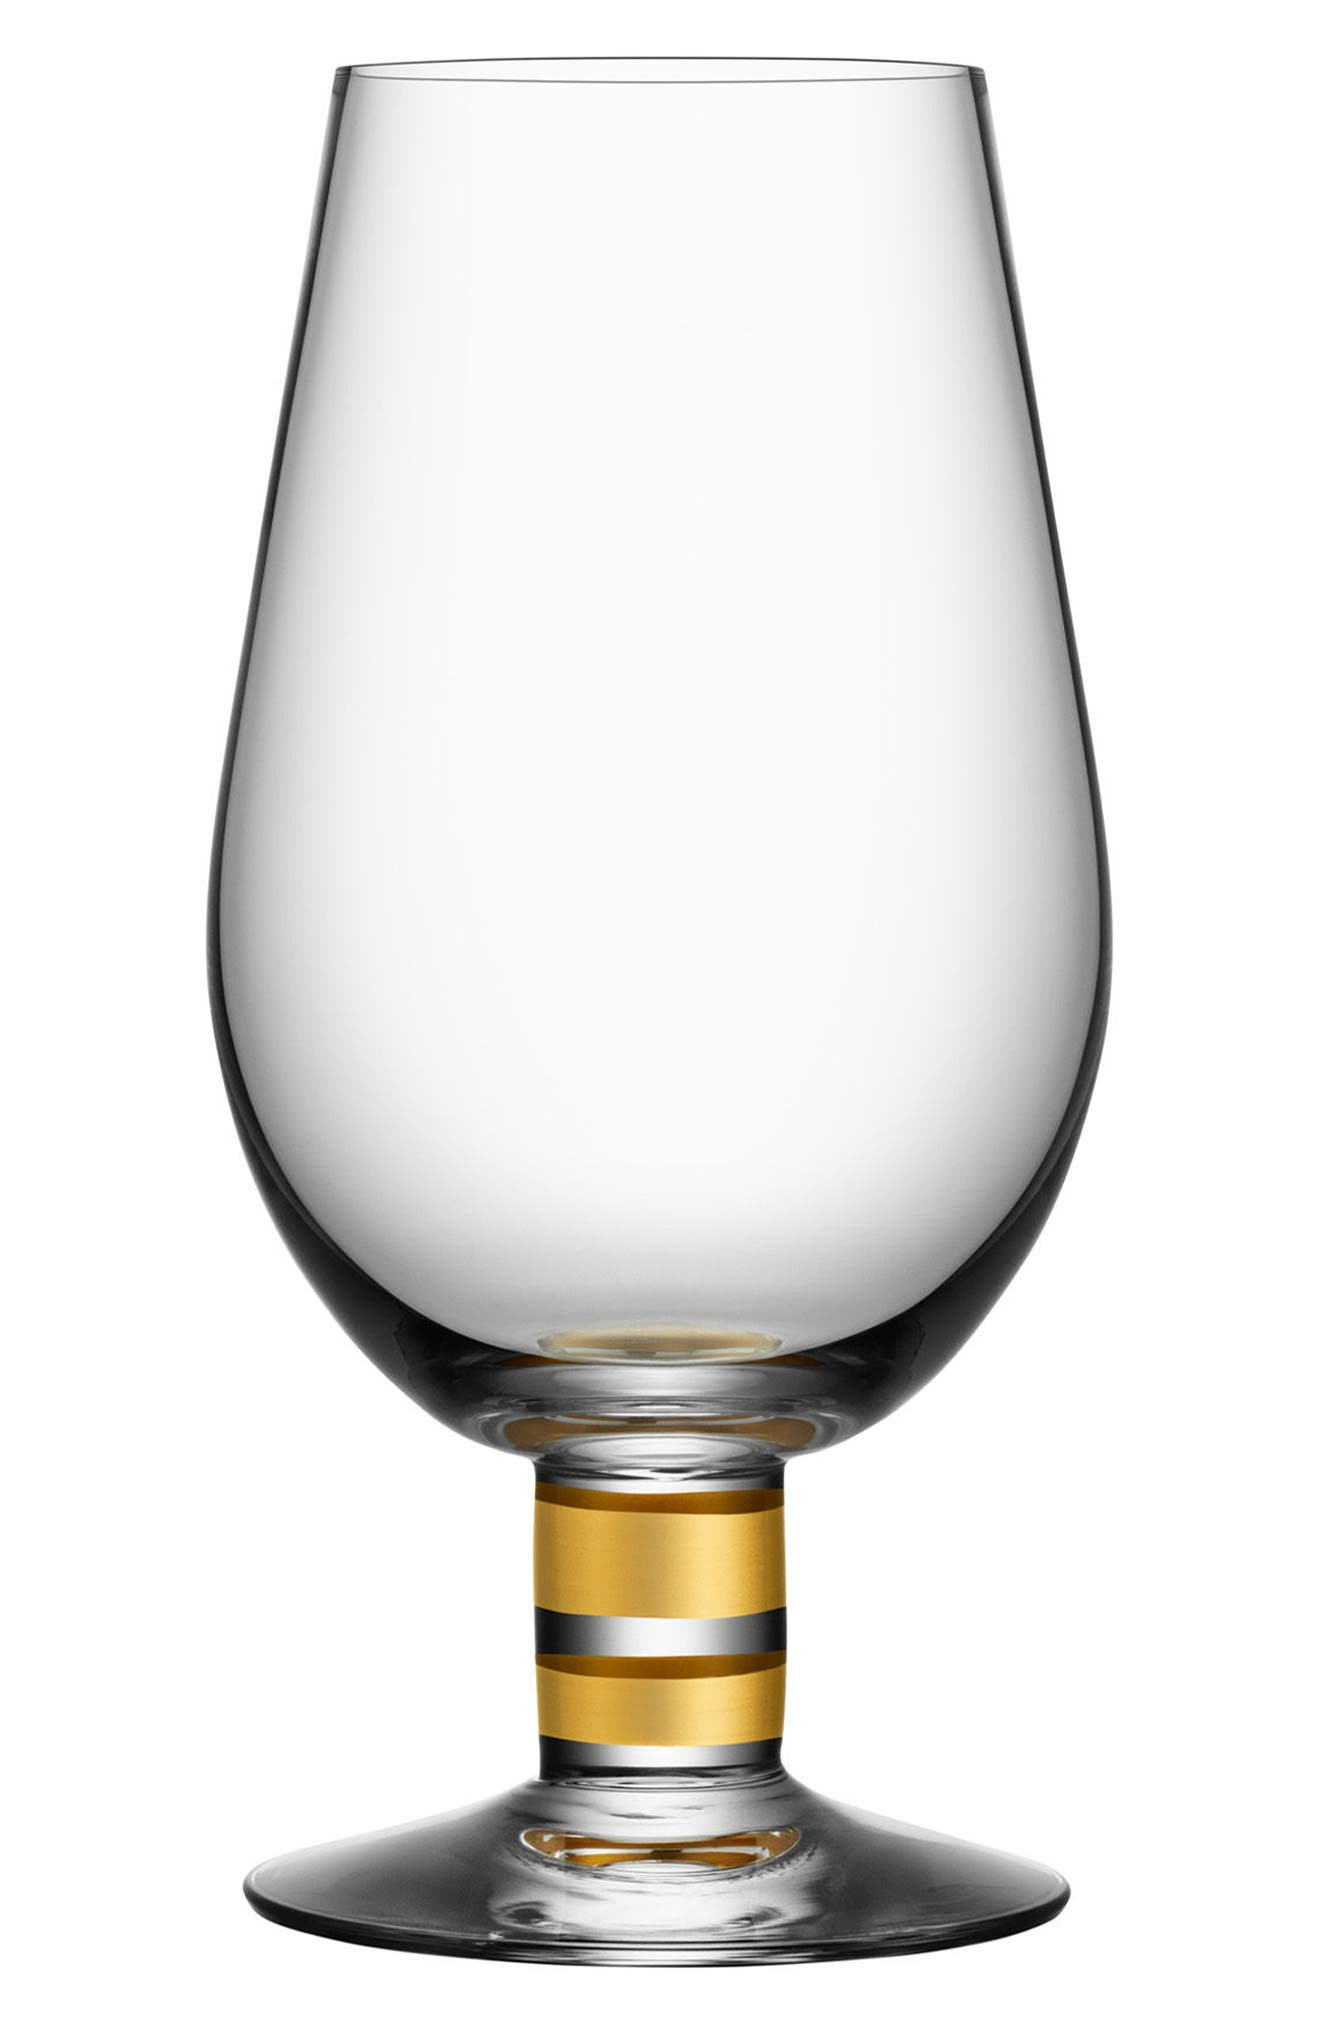 ORREFORS Morberg Collection Set of 2 Footed Crystal Beer Glasses, Main, color, CLEAR